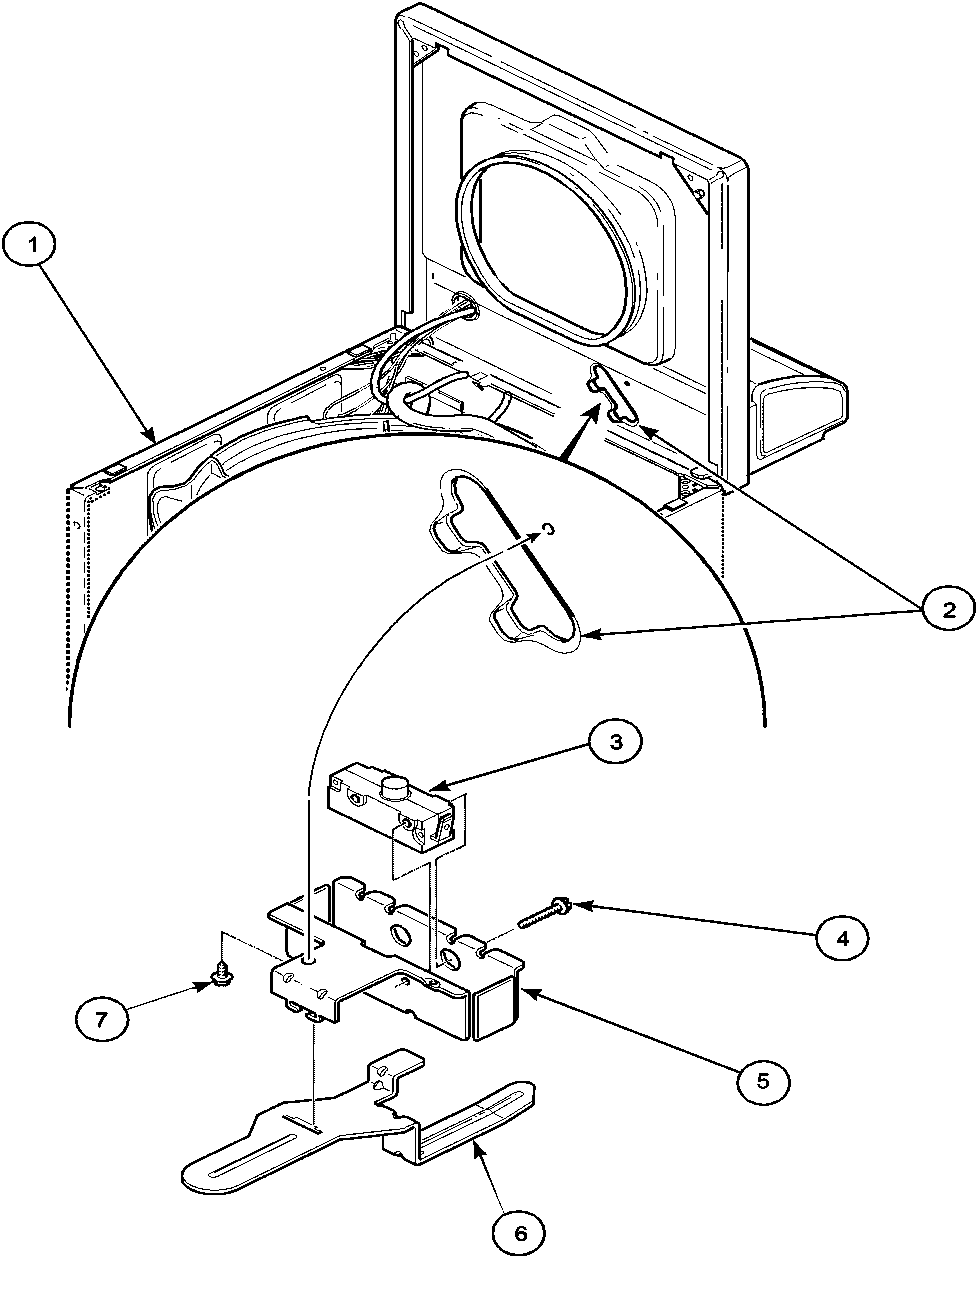 whirlpool washer parts diagram 4 wire trailer wiring amana lwa40aw2 top loading timer - stove clocks and appliance timers